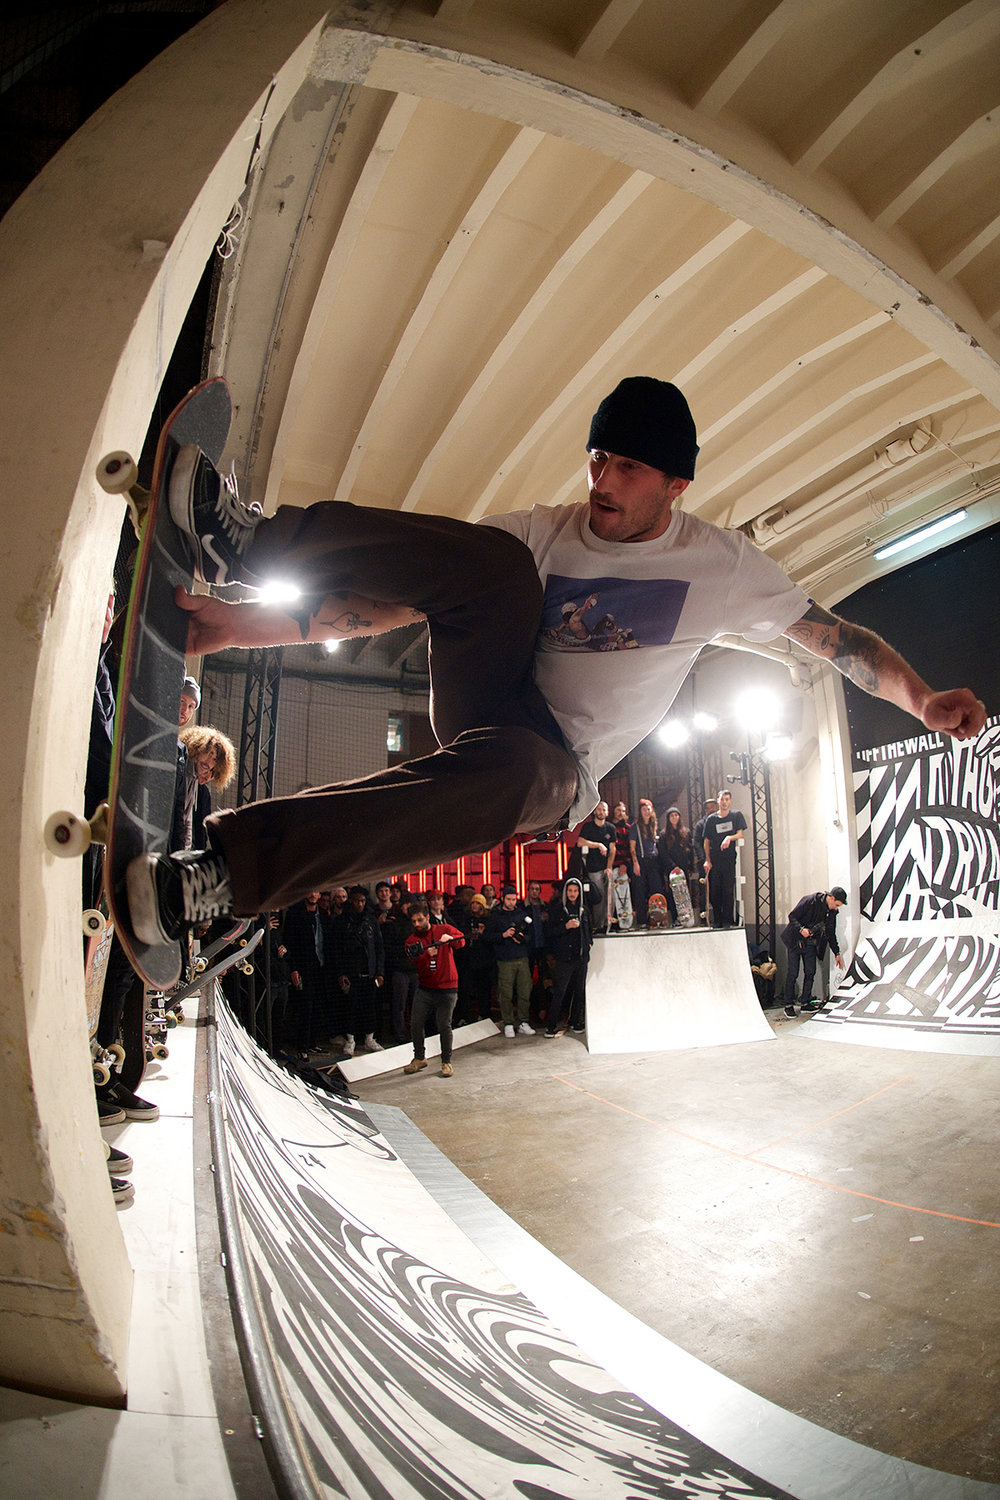 house_of_vans_paris_09.jpg